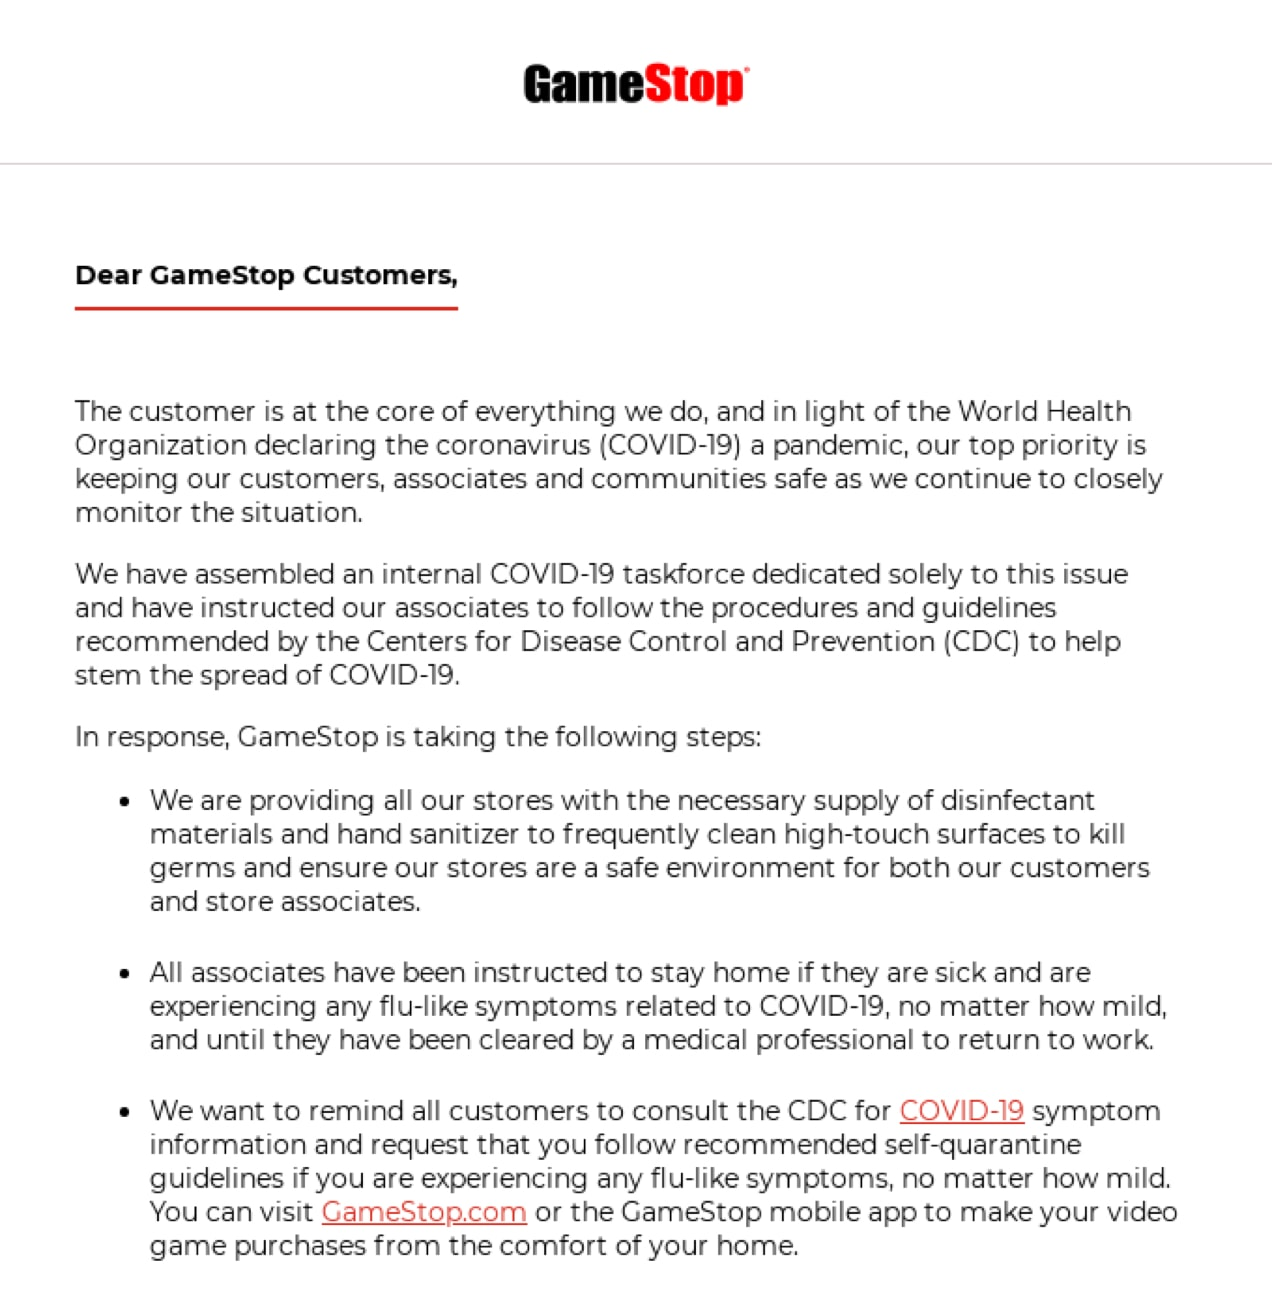 a text-based email from GameStop addressing the COVID-19 pandemic